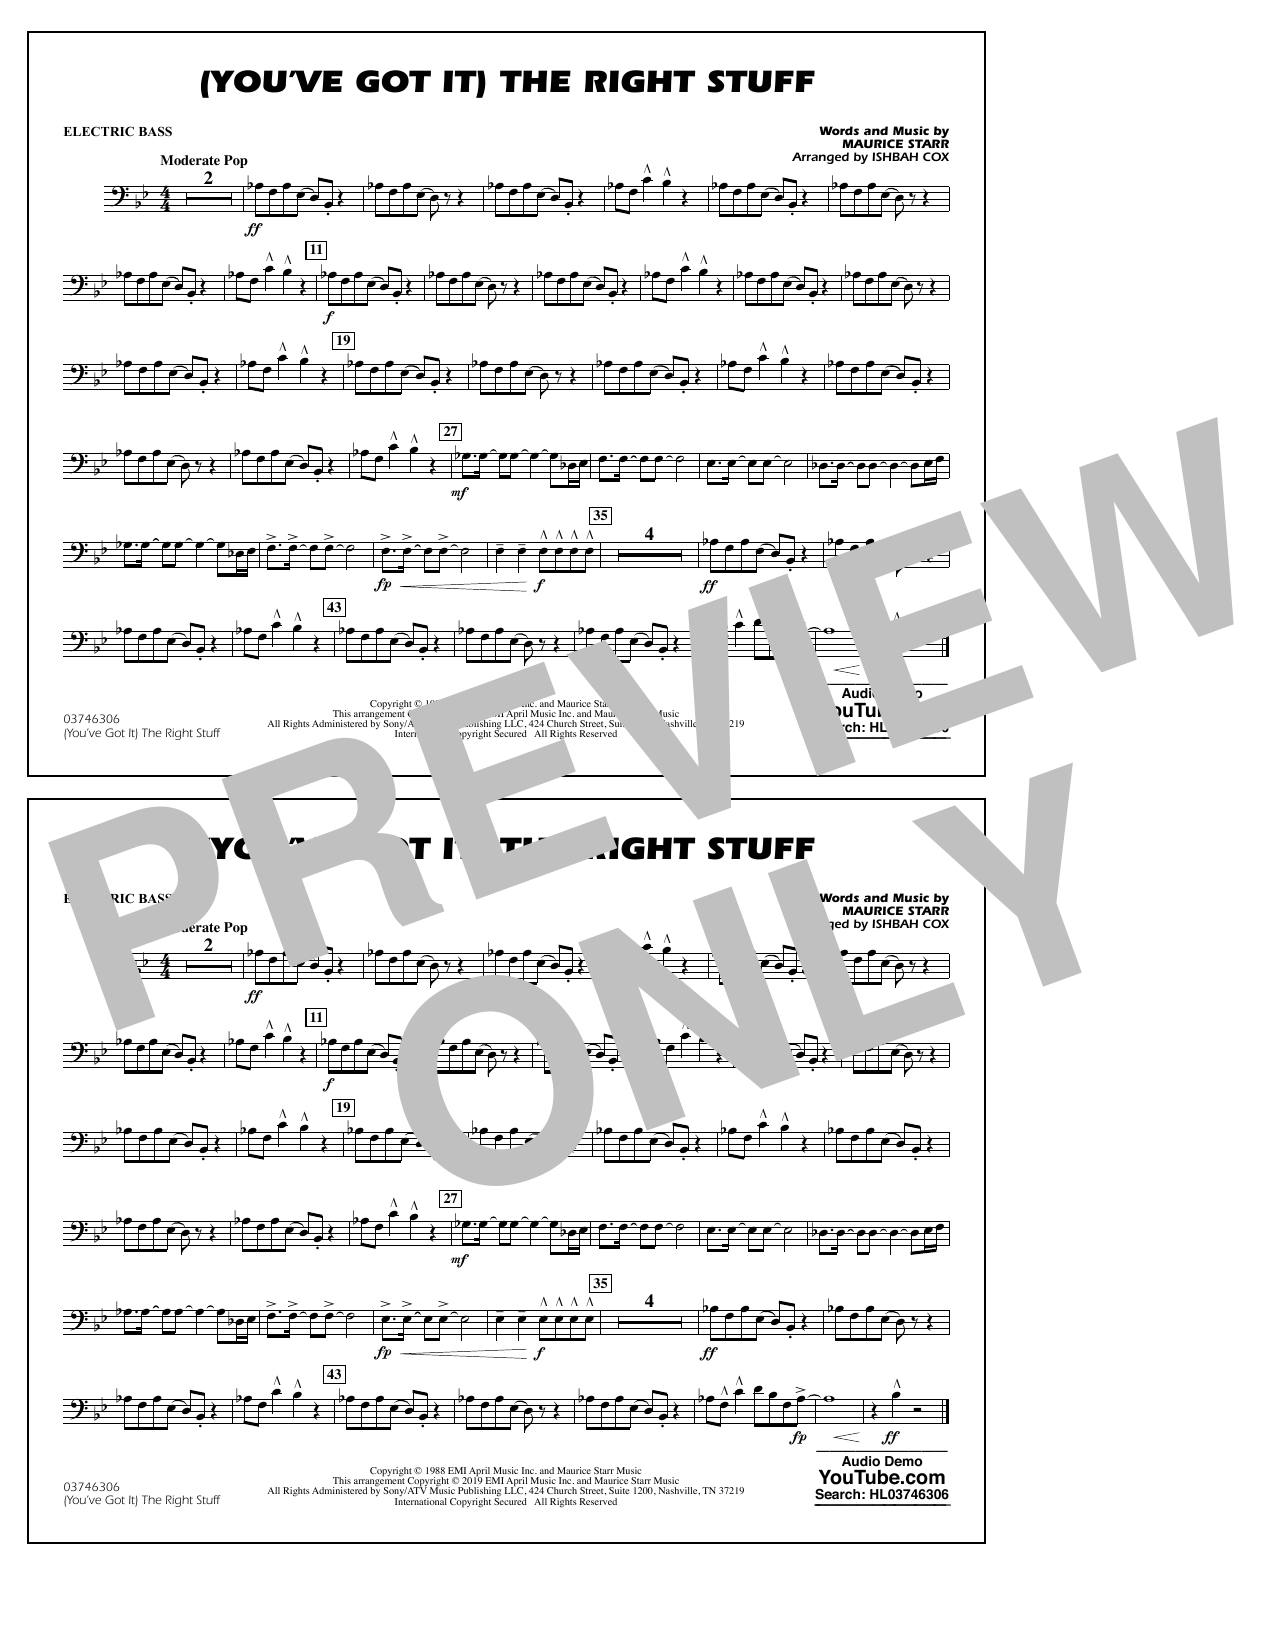 New Kids On The Block (You've Got It) The Right Stuff (arr. Ishbah Cox) - Electric Bass sheet music preview music notes and score for Marching Band including 1 page(s)